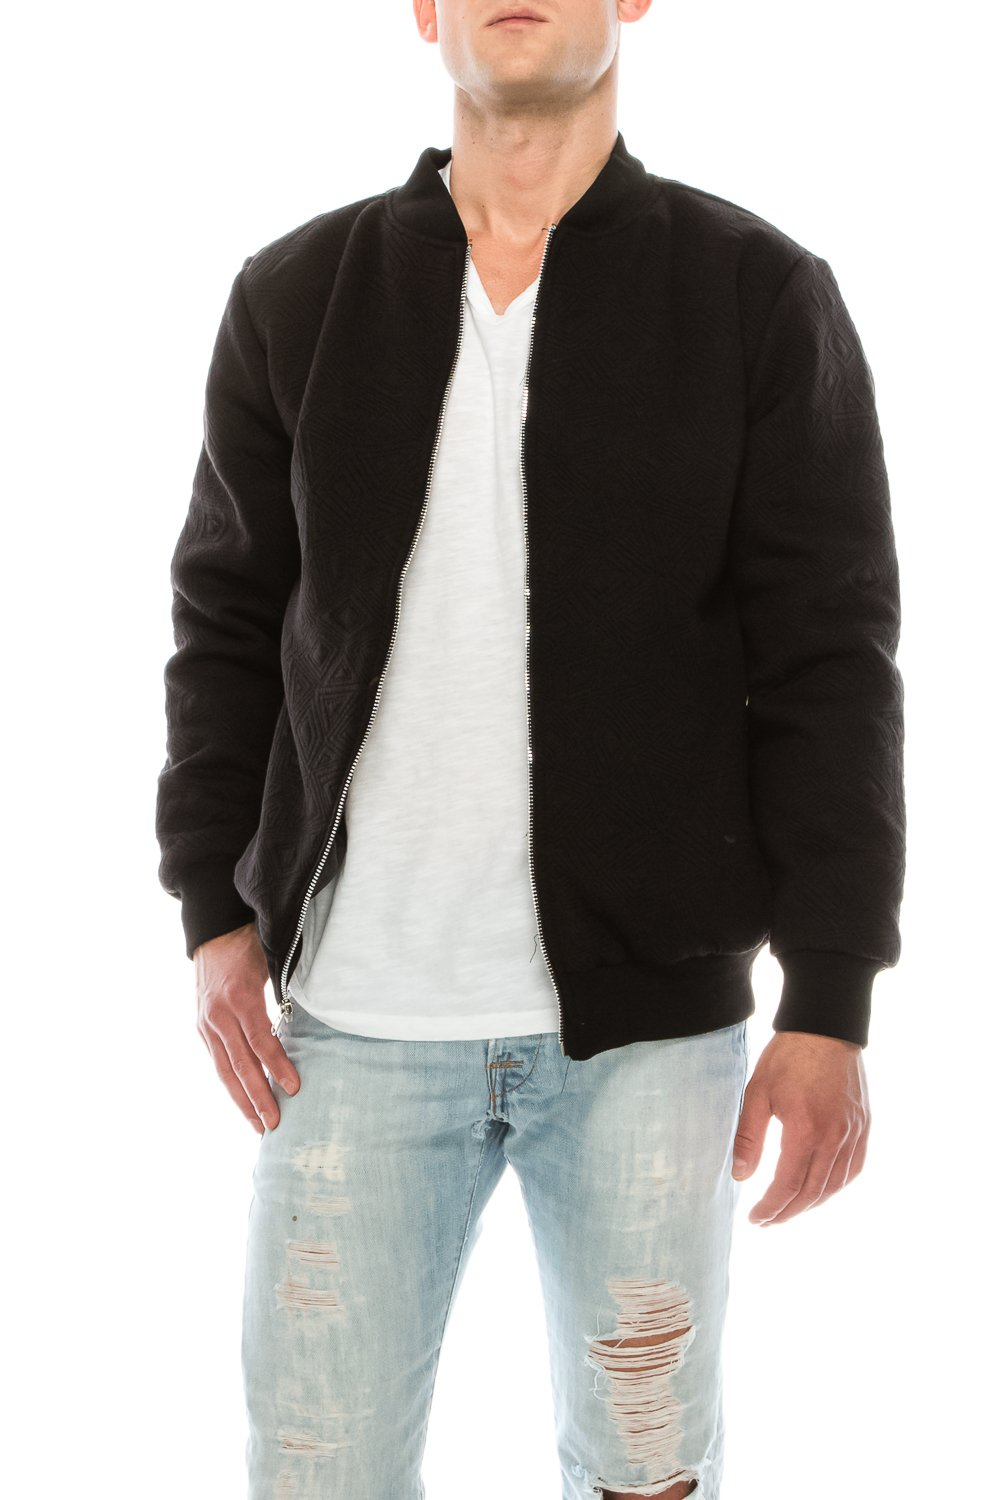 KlothesKnit Men's Bomber Jacket Casual Solid Texture Zip-up Outerwear with Pockets XXXL Black